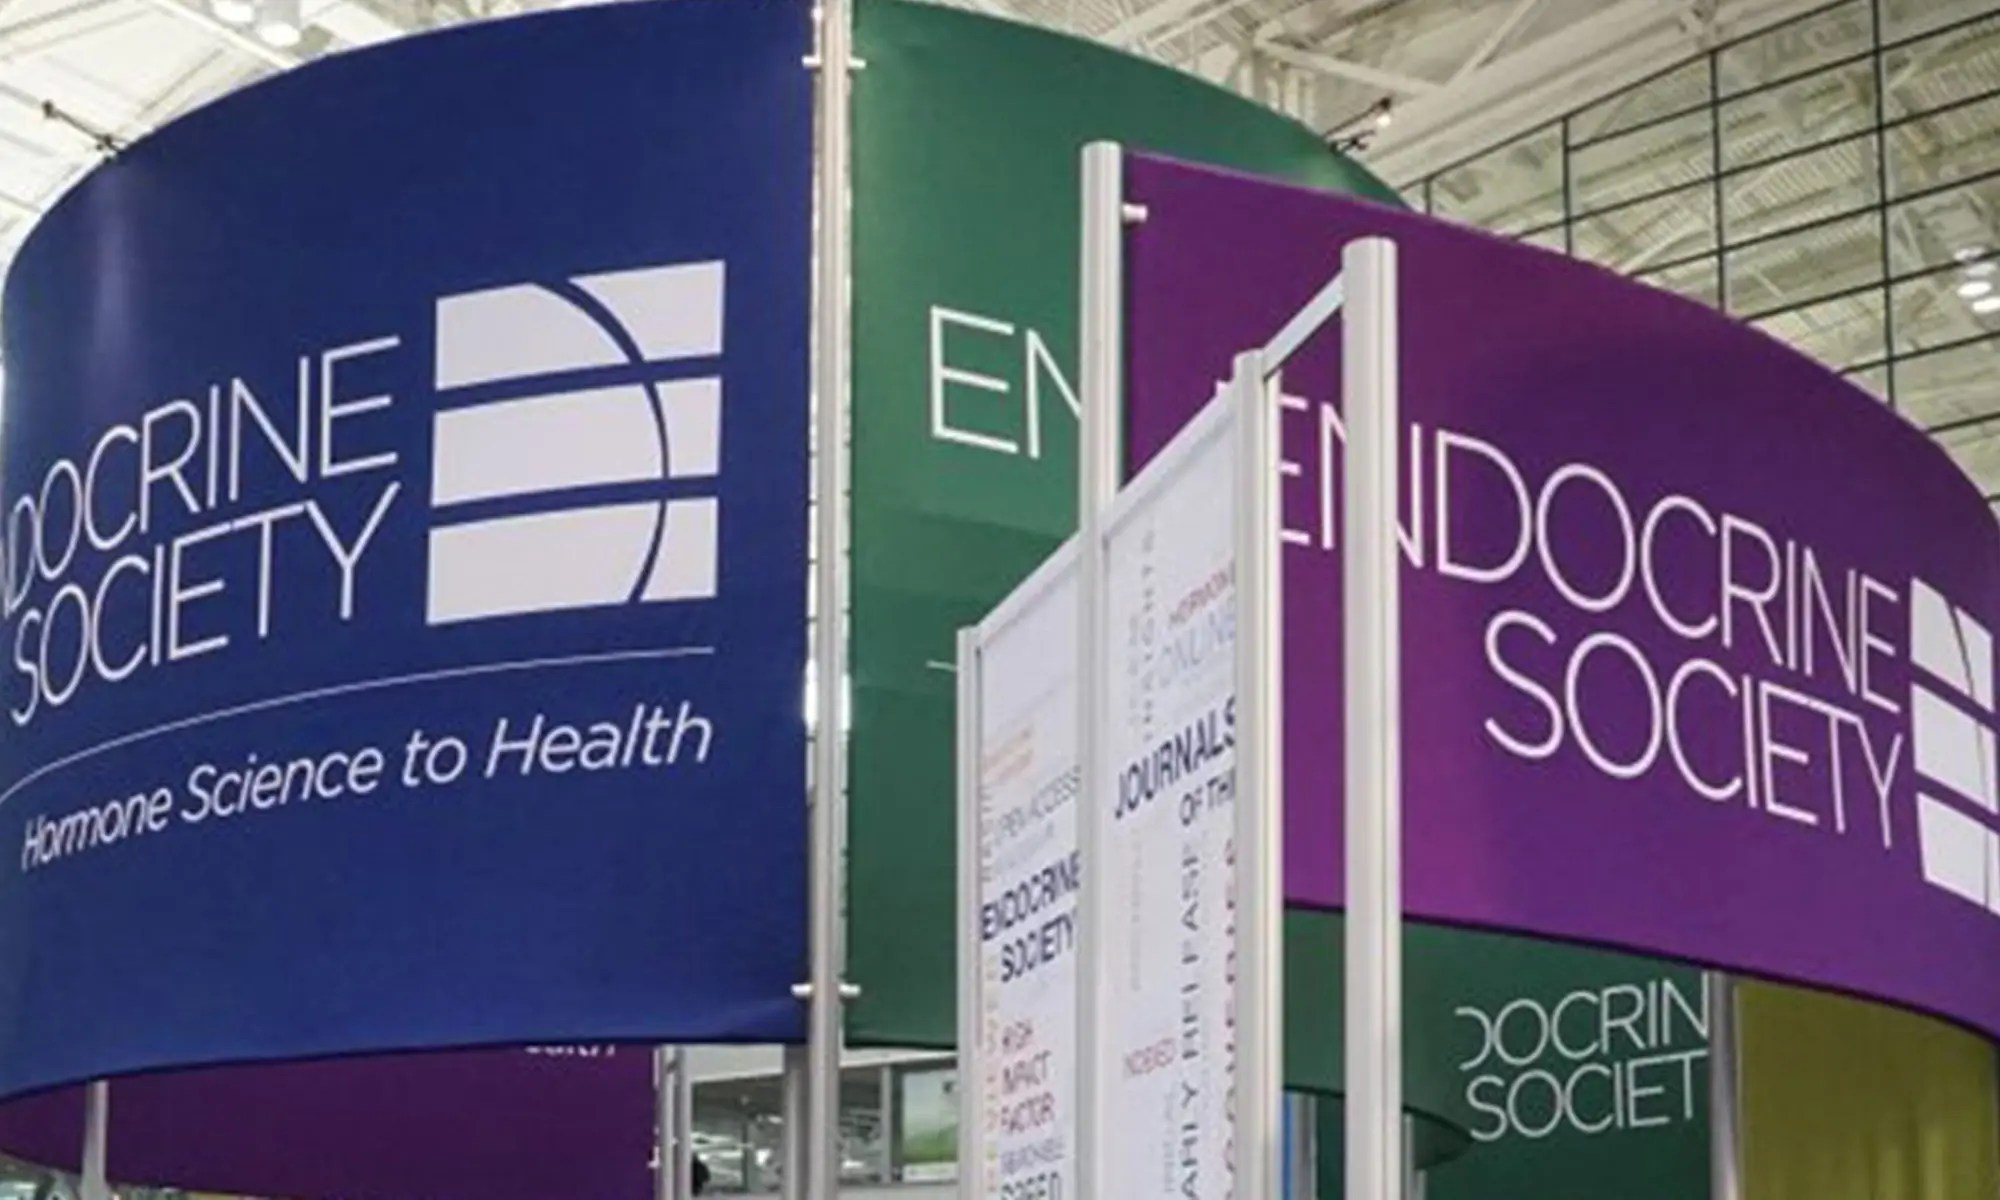 Endocrine Society banners